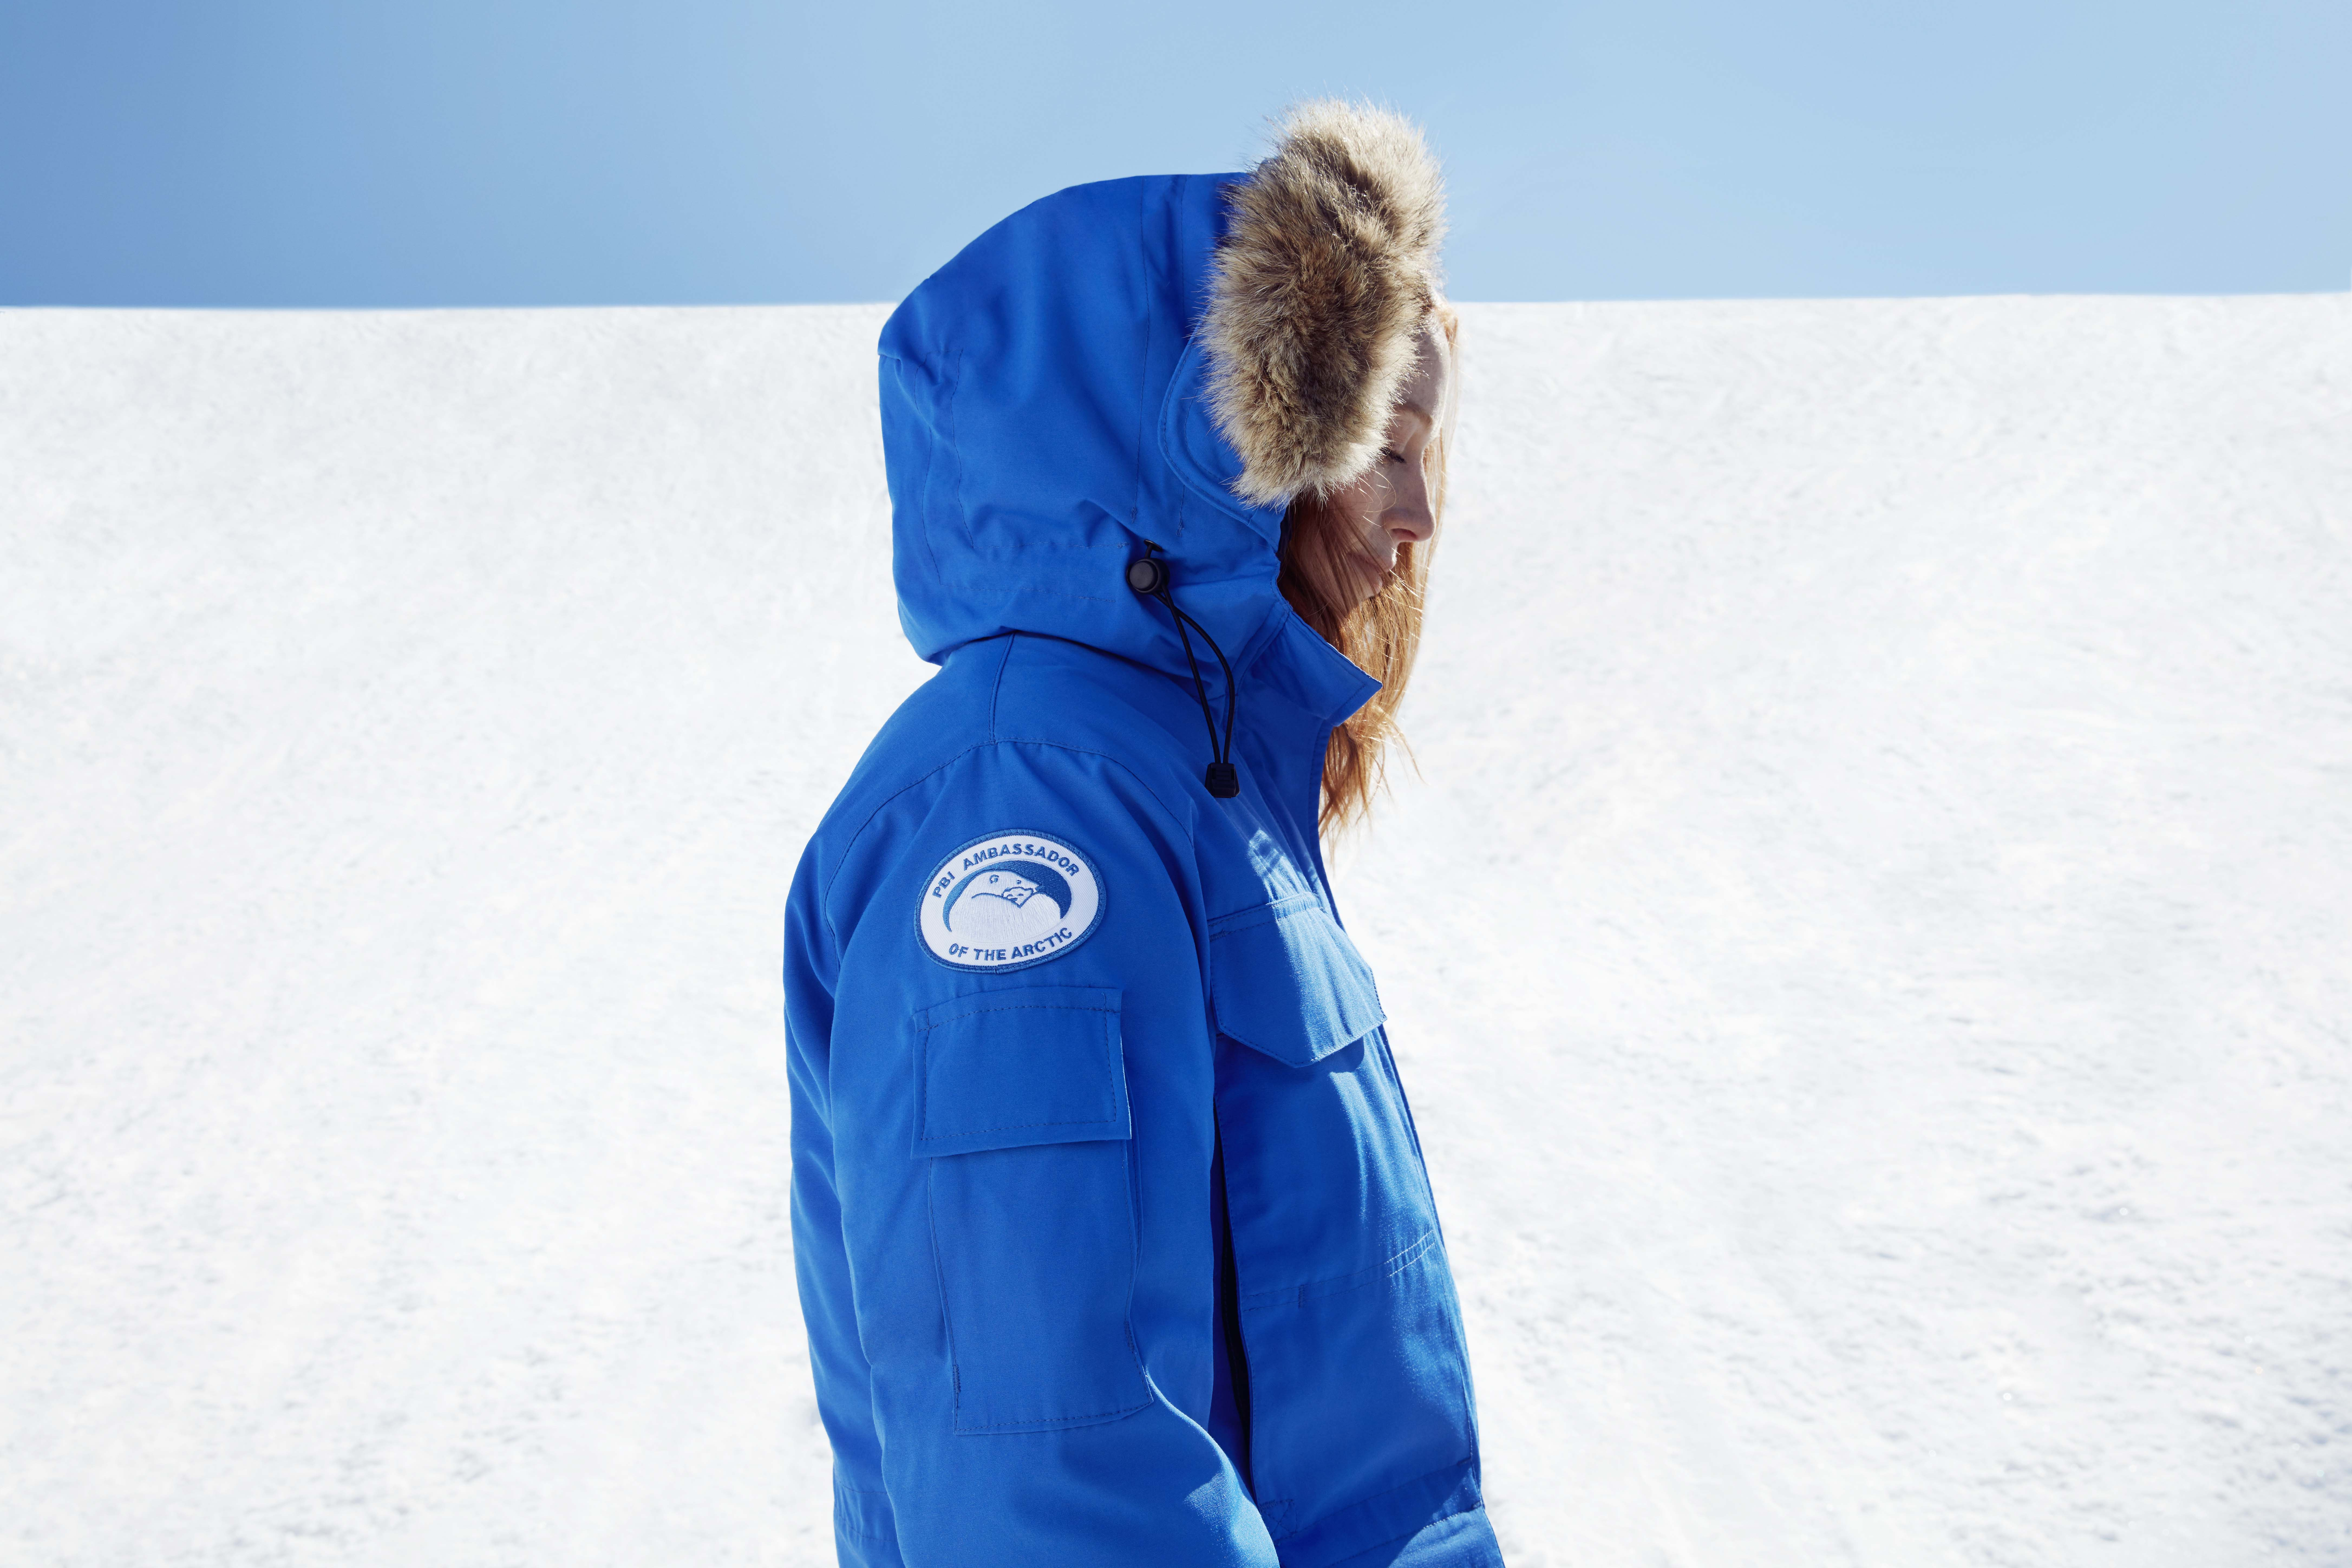 An item from Canada Goose's capsule collection in PBI Blue